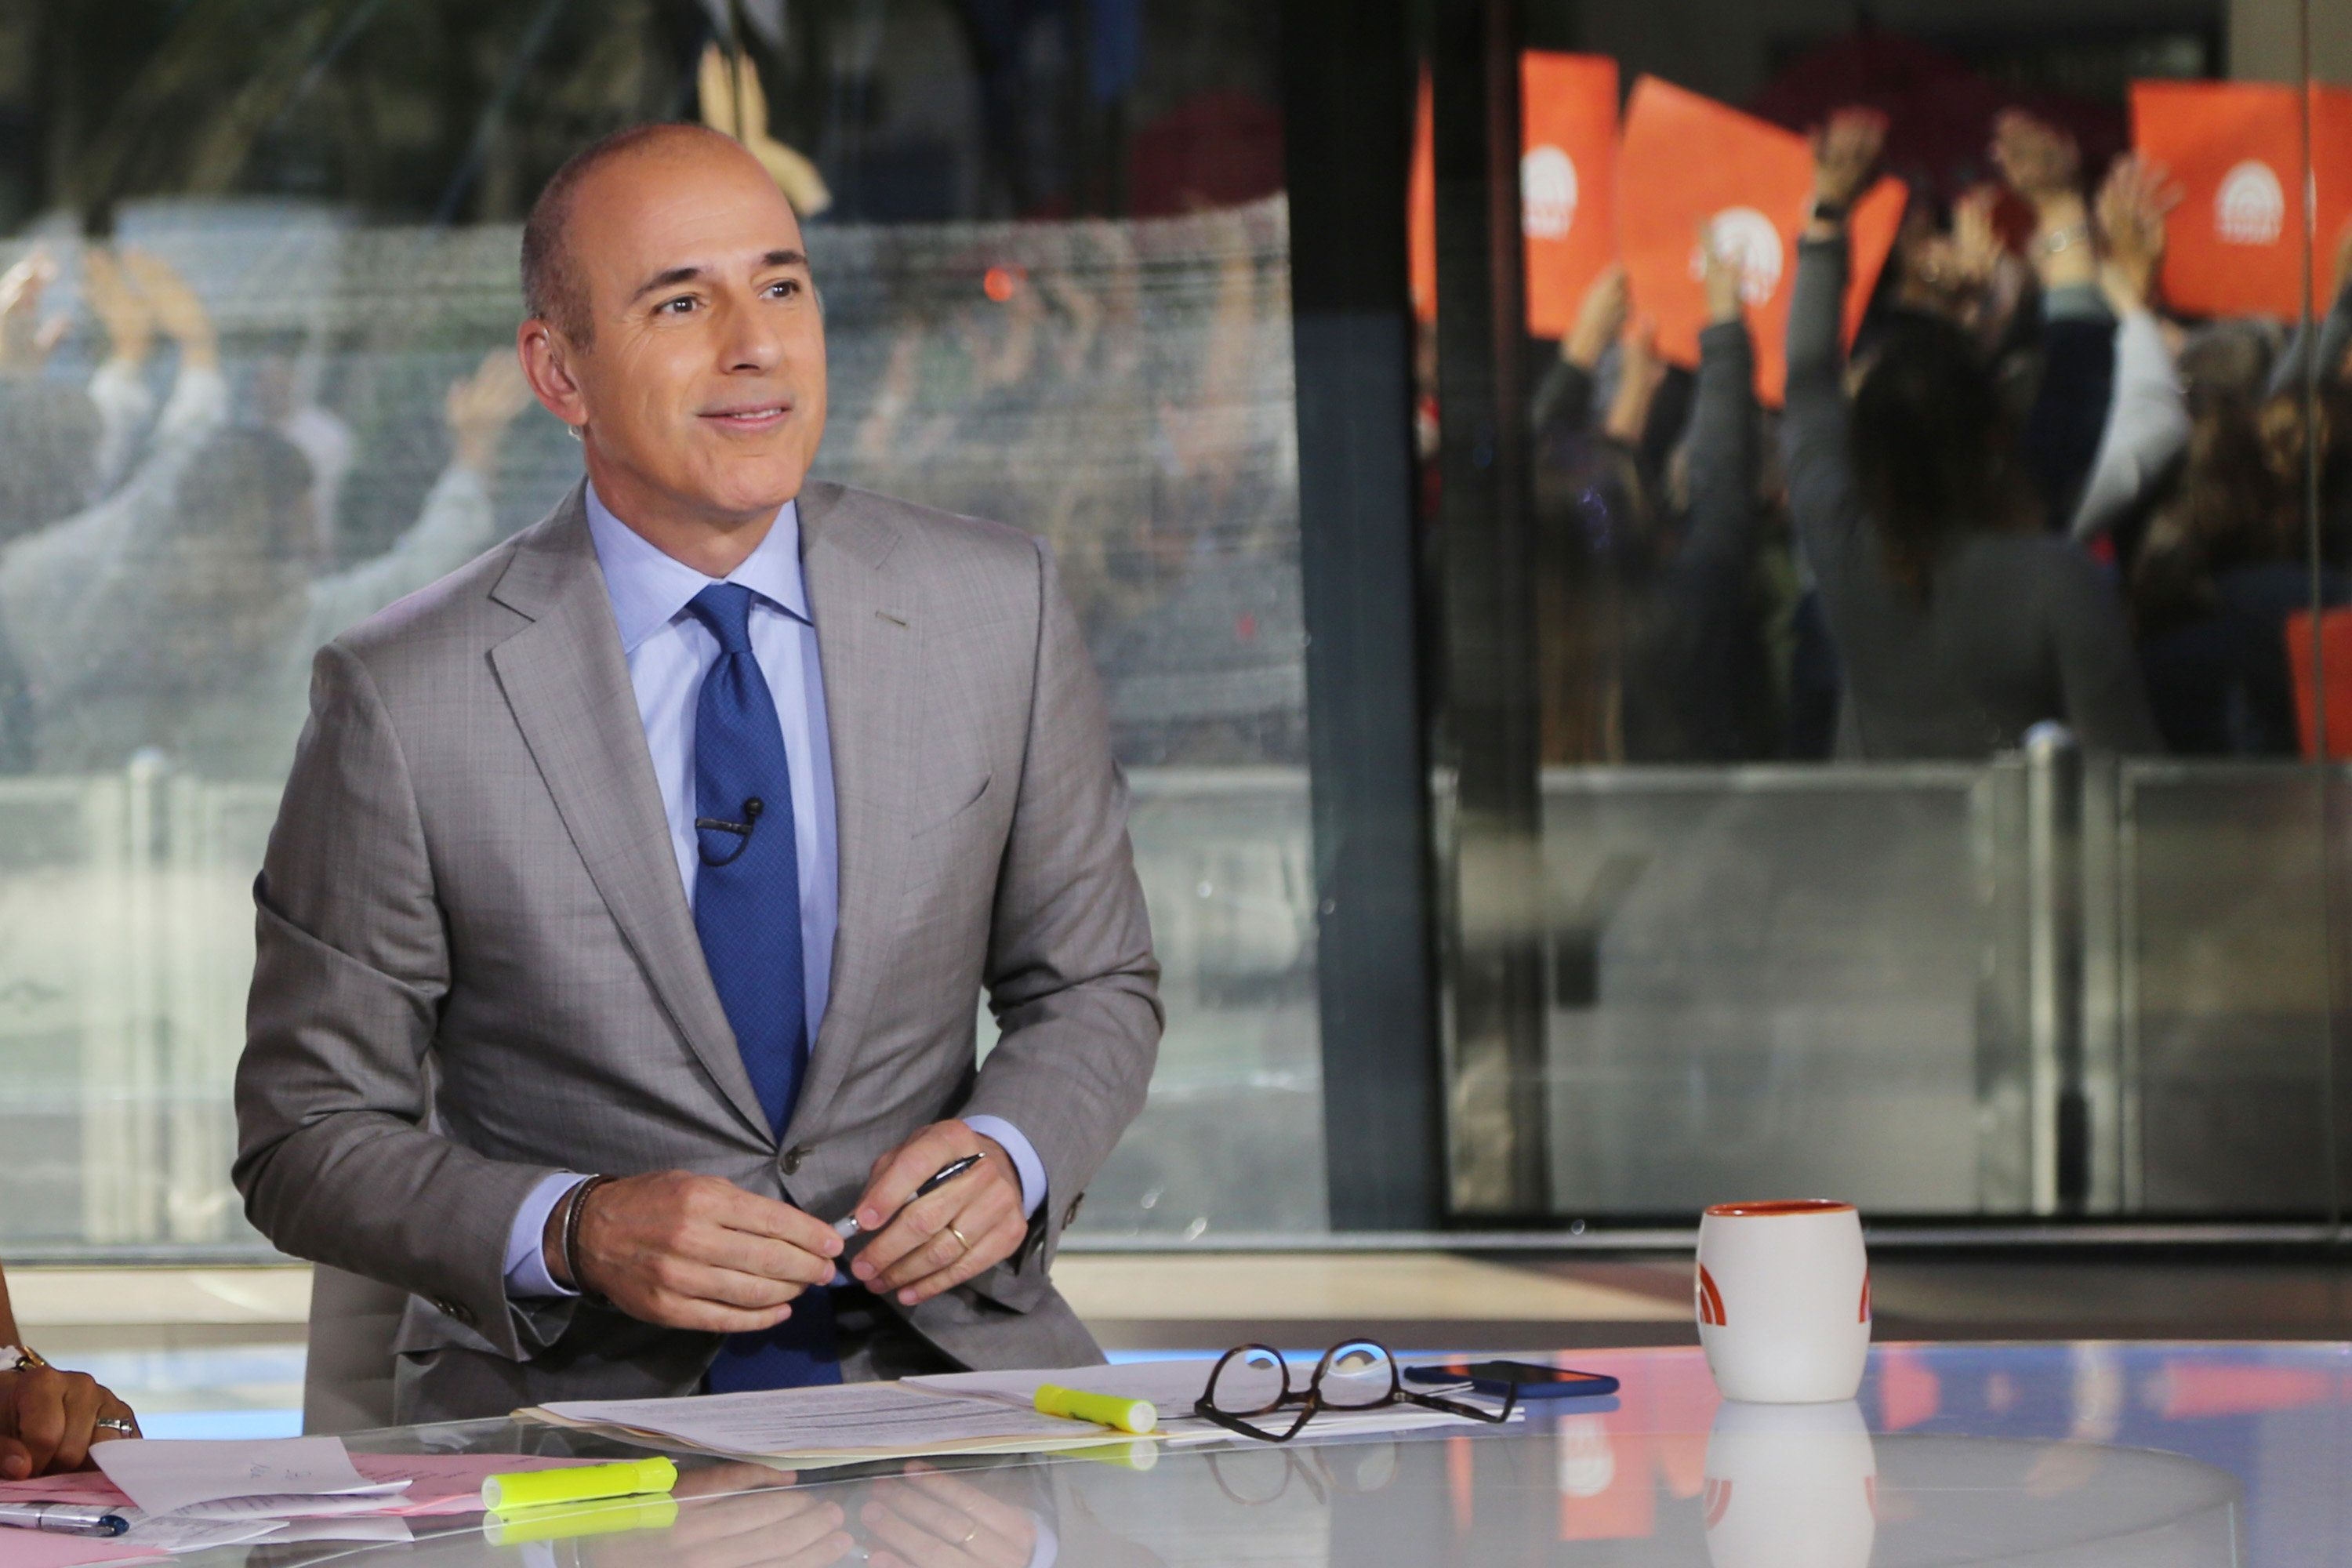 TODAY -- Pictured: Matt Lauer on Thursday, June 8, 2017 -- (Photo by: Zach Pagano/NBC/NBCU Photo Bank via Getty Images)